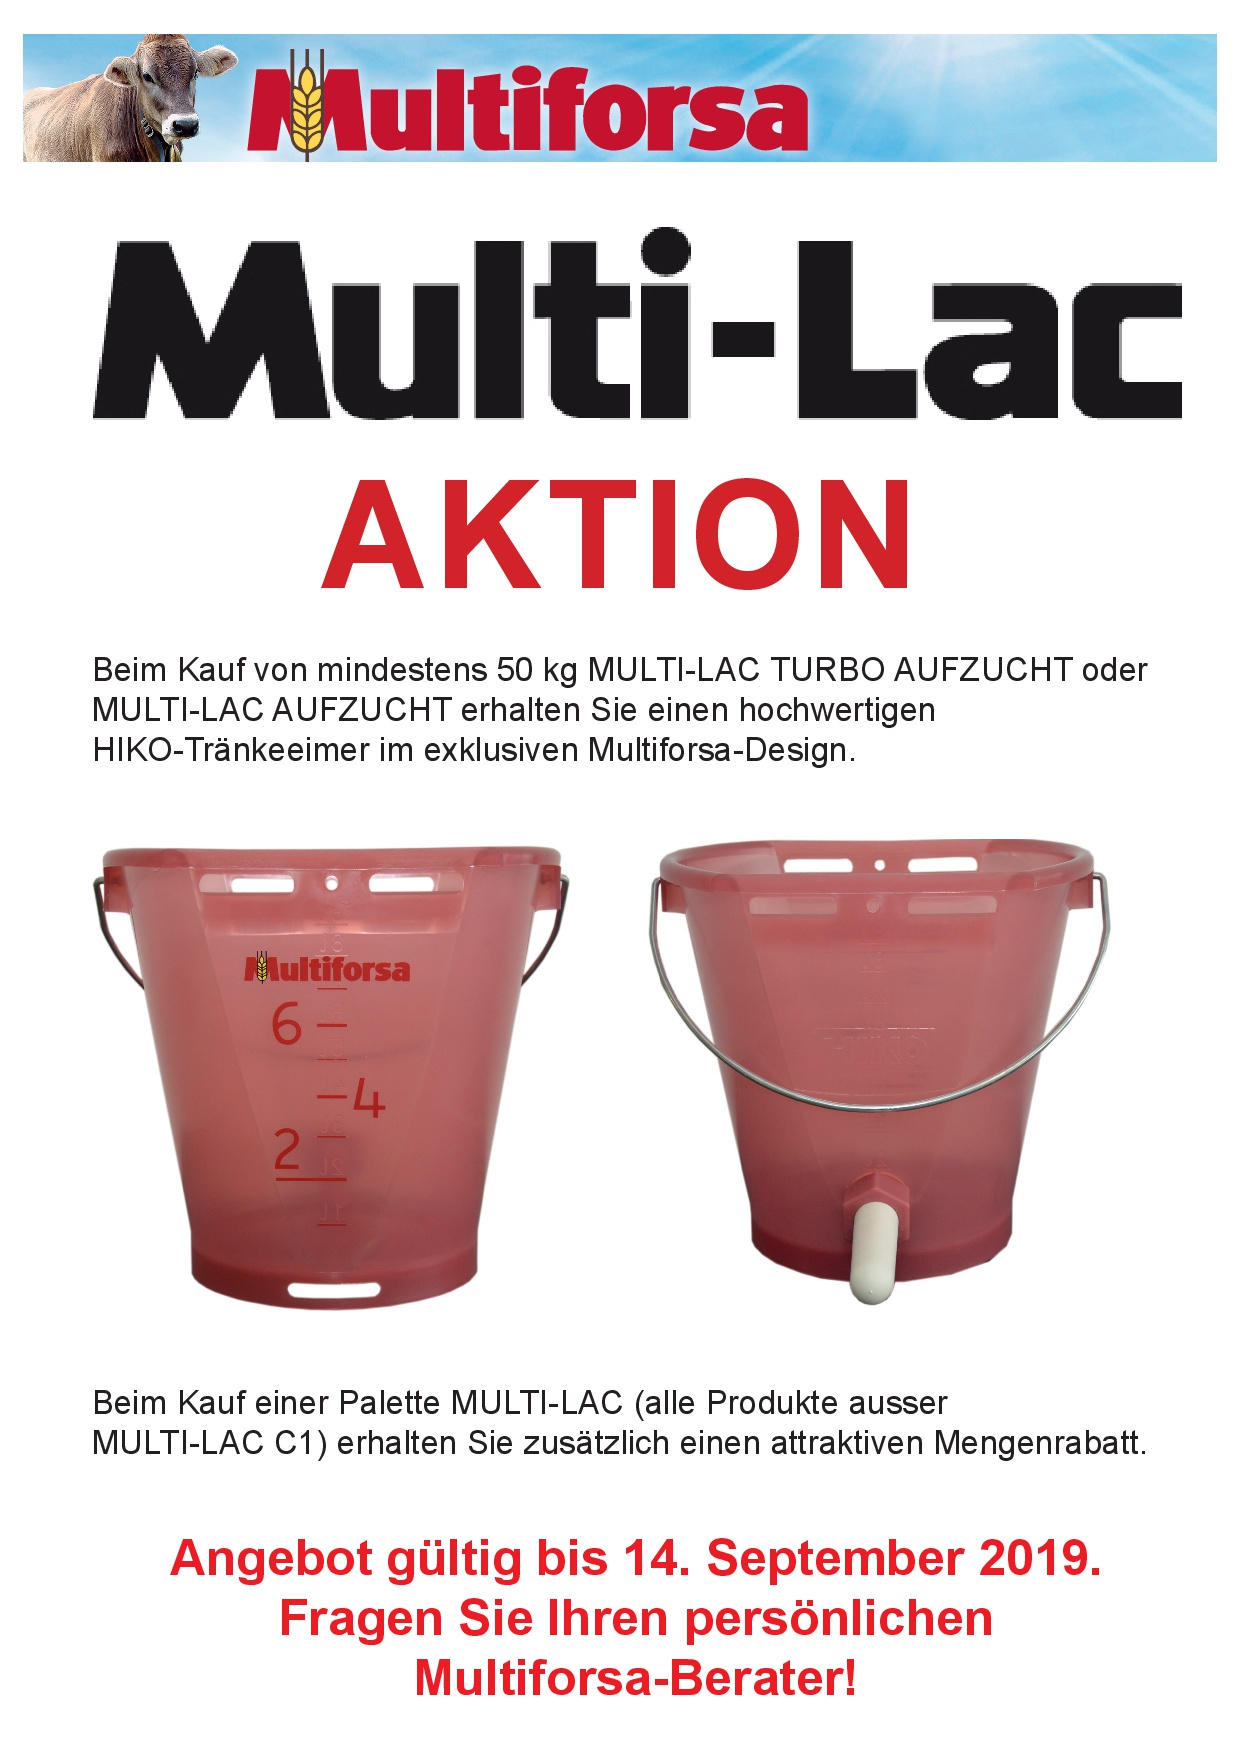 SKMV Aktion MULTI LAC 08.09 2019 d